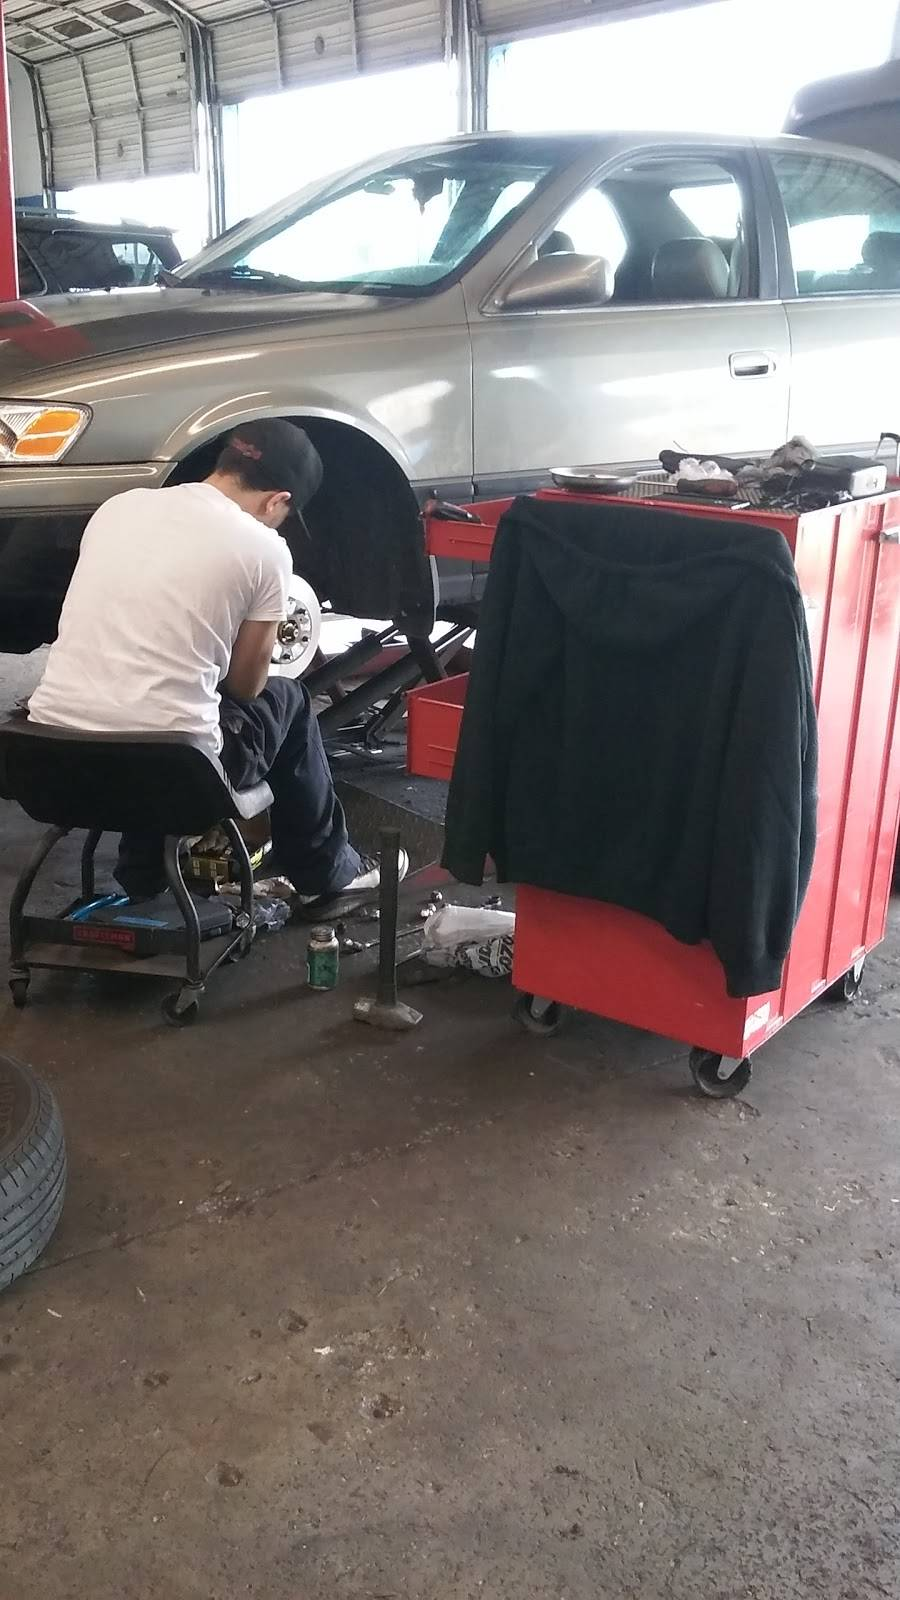 Pep Boys Auto Service & Tire - Formerly Just Brakes - car repair  | Photo 7 of 10 | Address: 3327 W Colonial Dr, Orlando, FL 32808, USA | Phone: (407) 521-8111